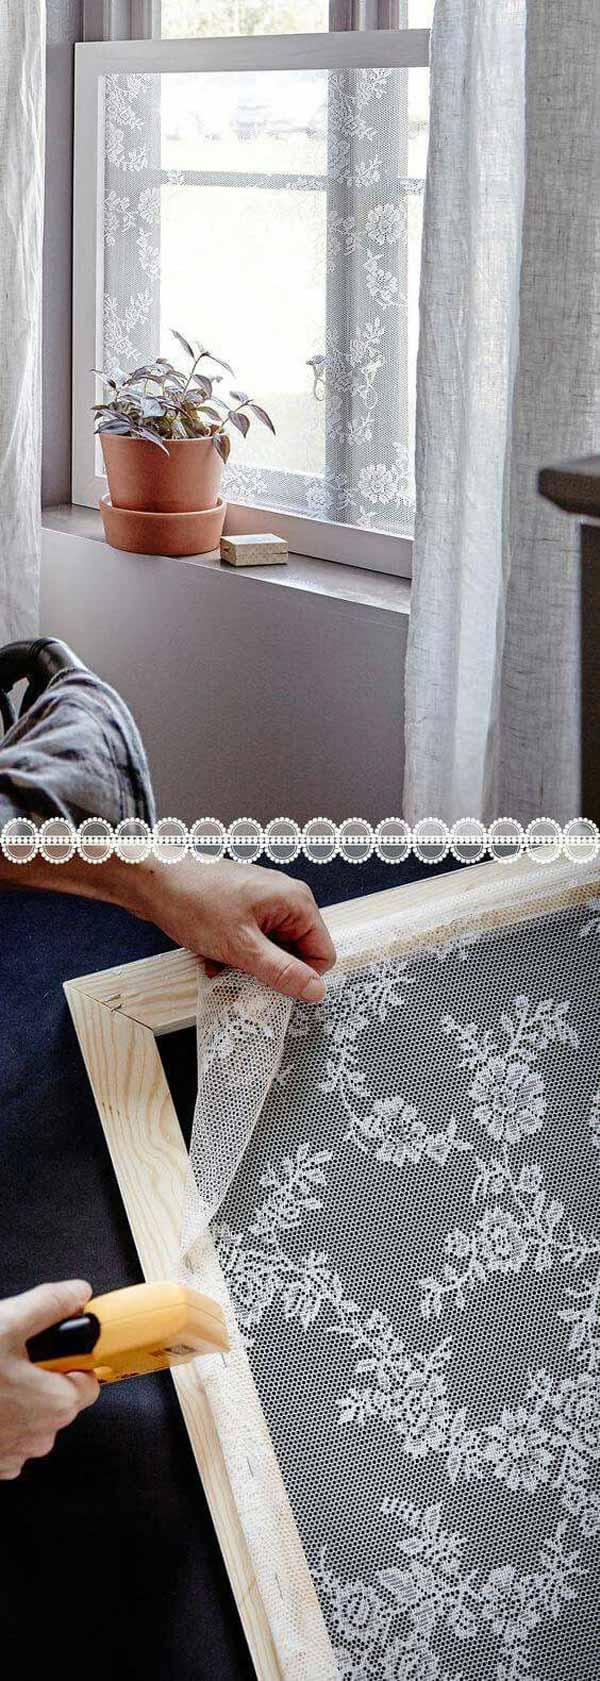 Pretty lace window screen